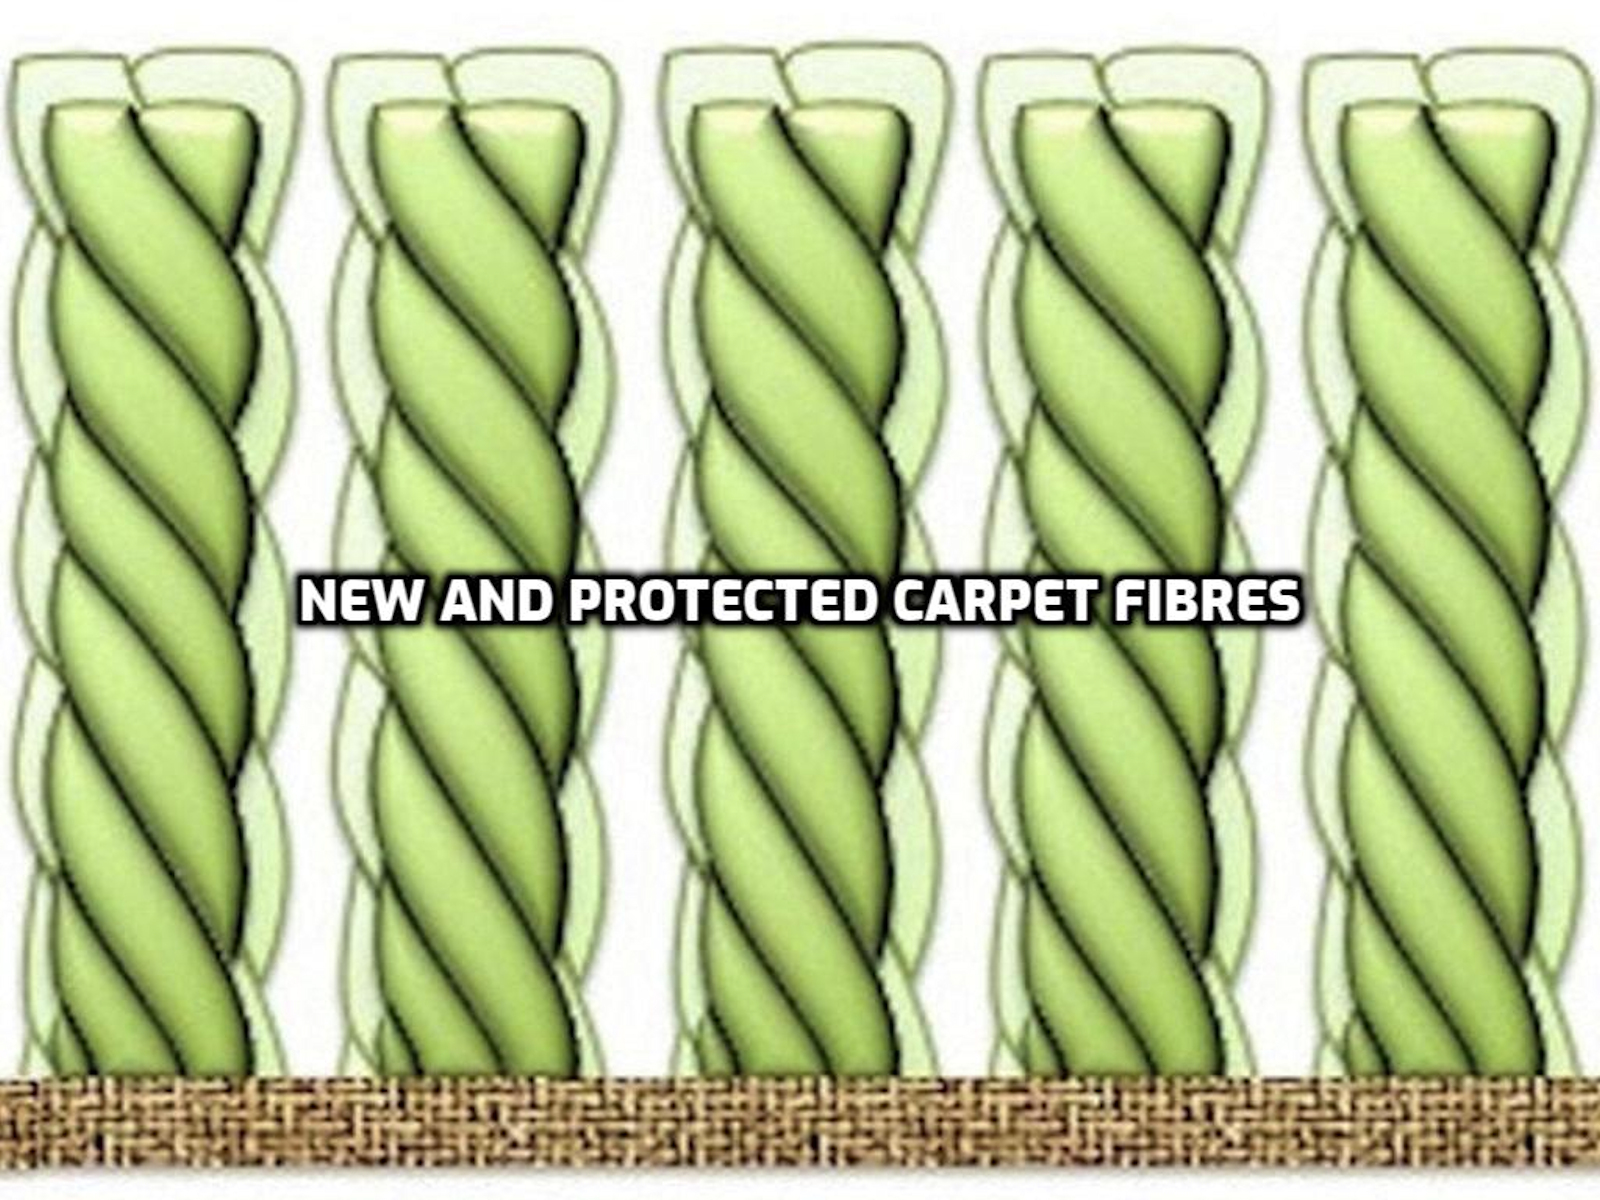 Carpet protector coating on new and protected carpet fibres